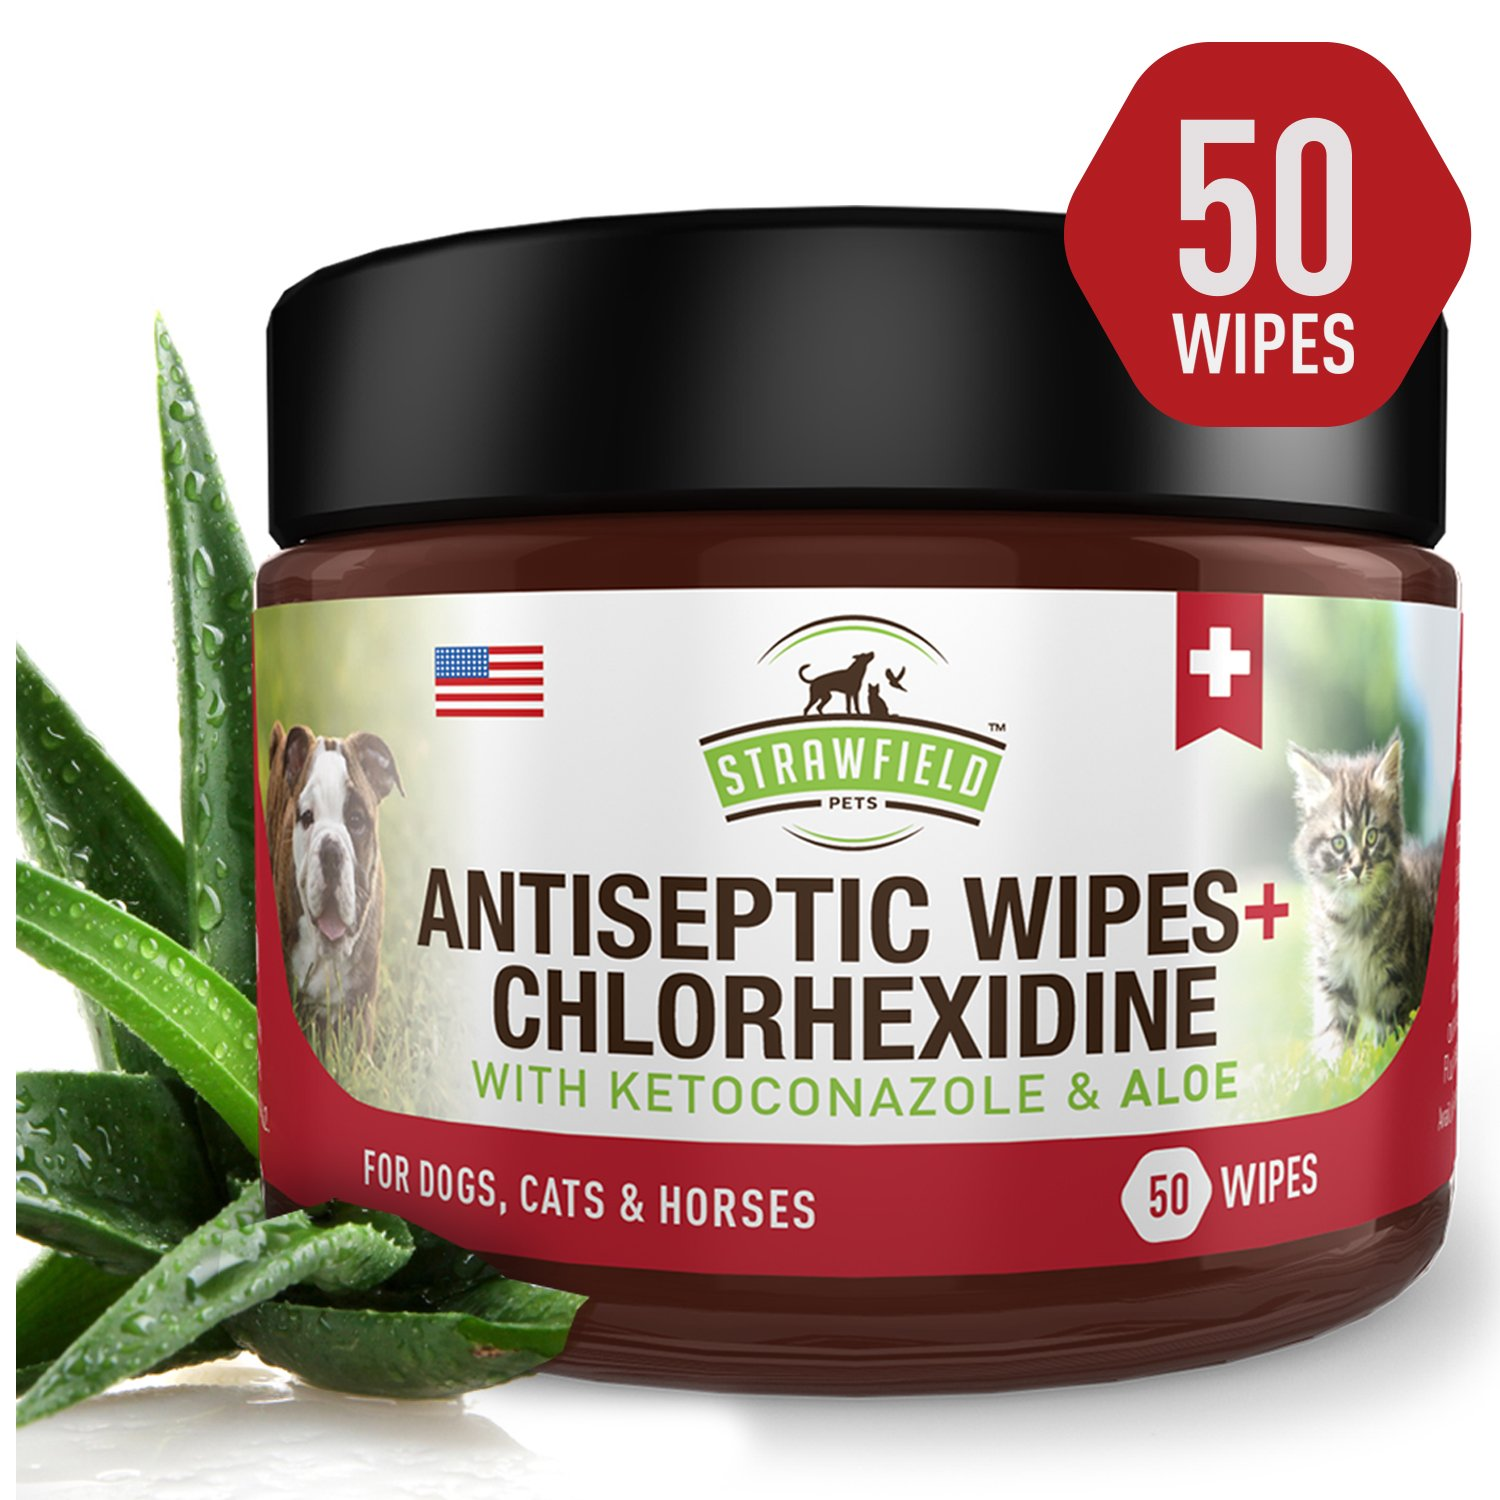 Chlorhexidine Wipes for Dogs + Cats, Ketoconazole + Aloe - 50 Pads - Cat + Dog Hot Spot Treatment, Mange, Ringworm, Yeast Infection, Allergy Itch Relief, Acne, Deodorizer Antibacterial Antifungal, USA by Strawfield Pets